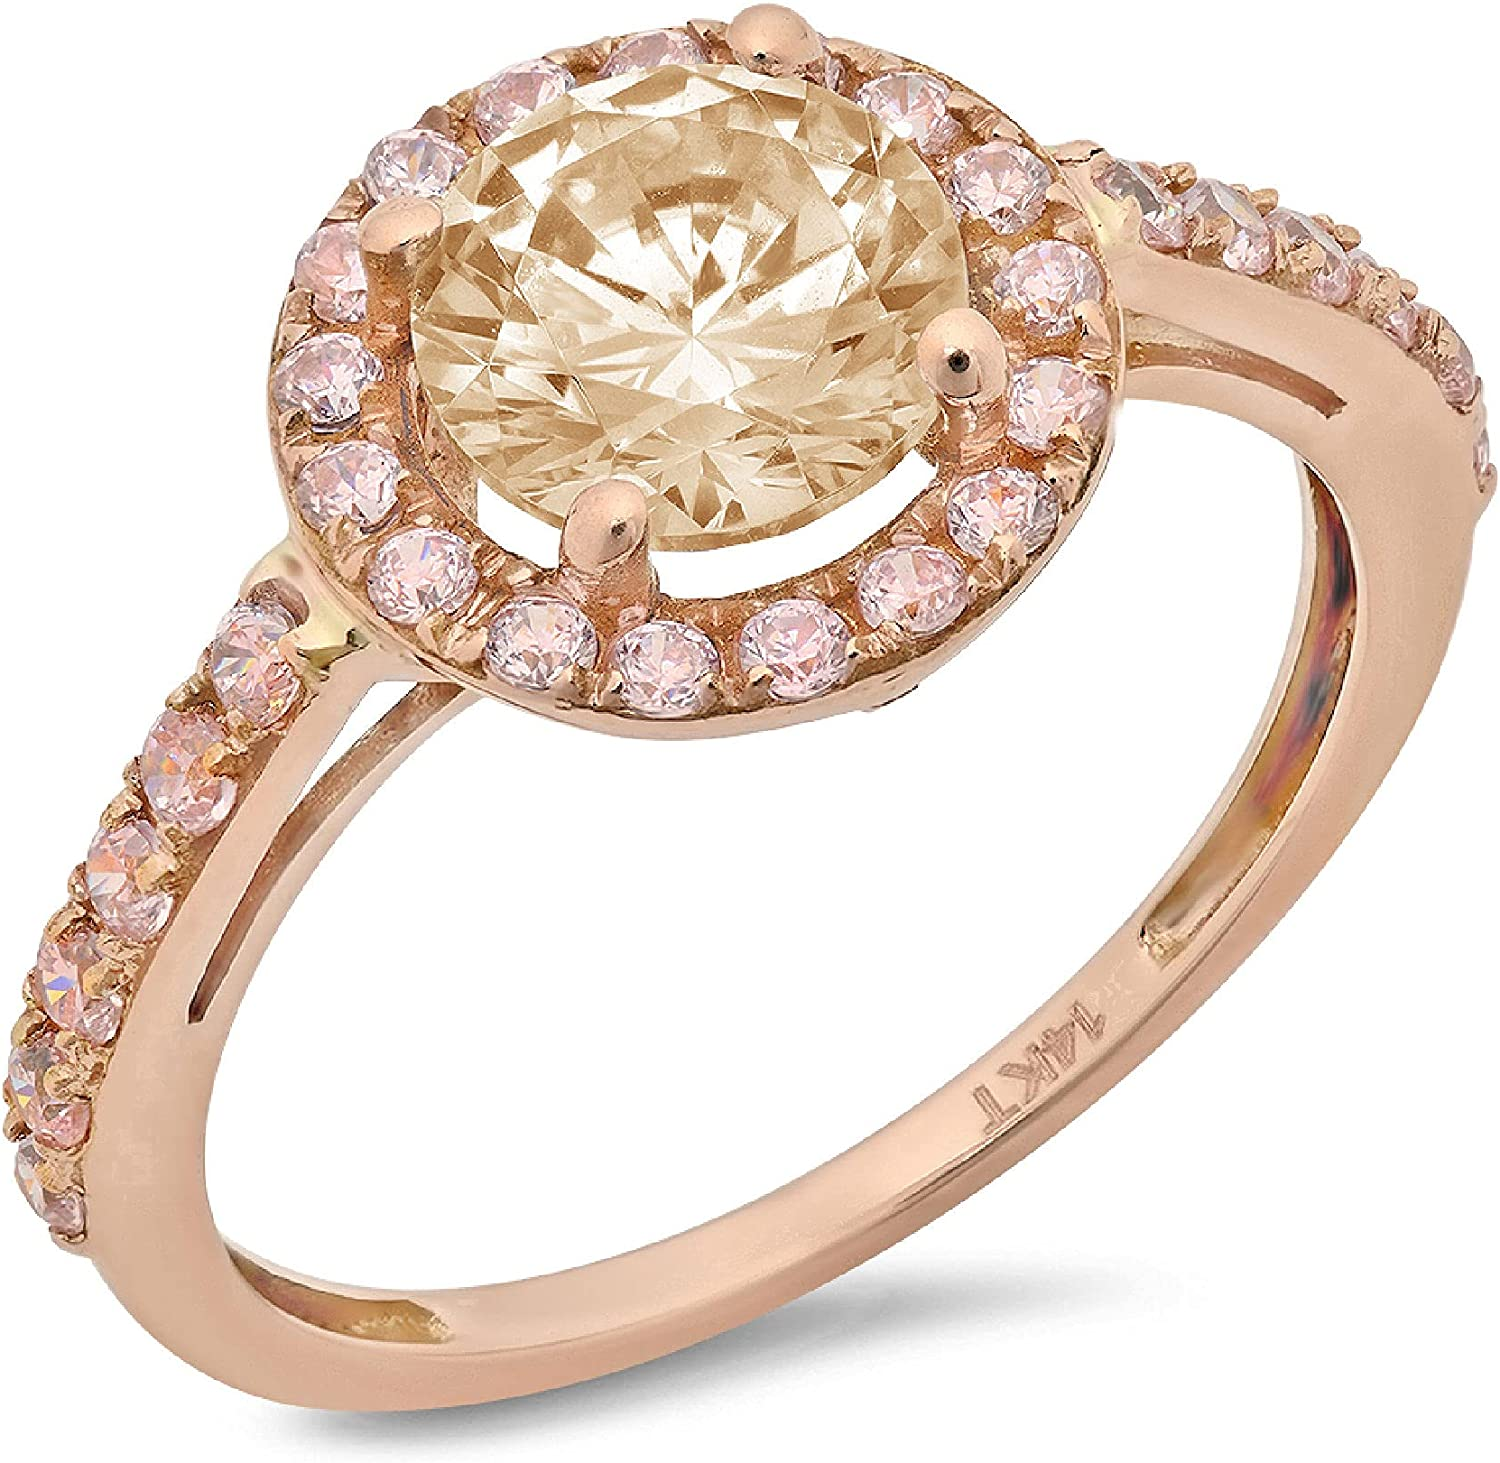 2.45 ct Brilliant Round Cut Solitaire accent Halo Stunning Genuine VVS1 Simulated Yellow Moissanite Modern Promise Statement Designer Ring 18K Rose Gold